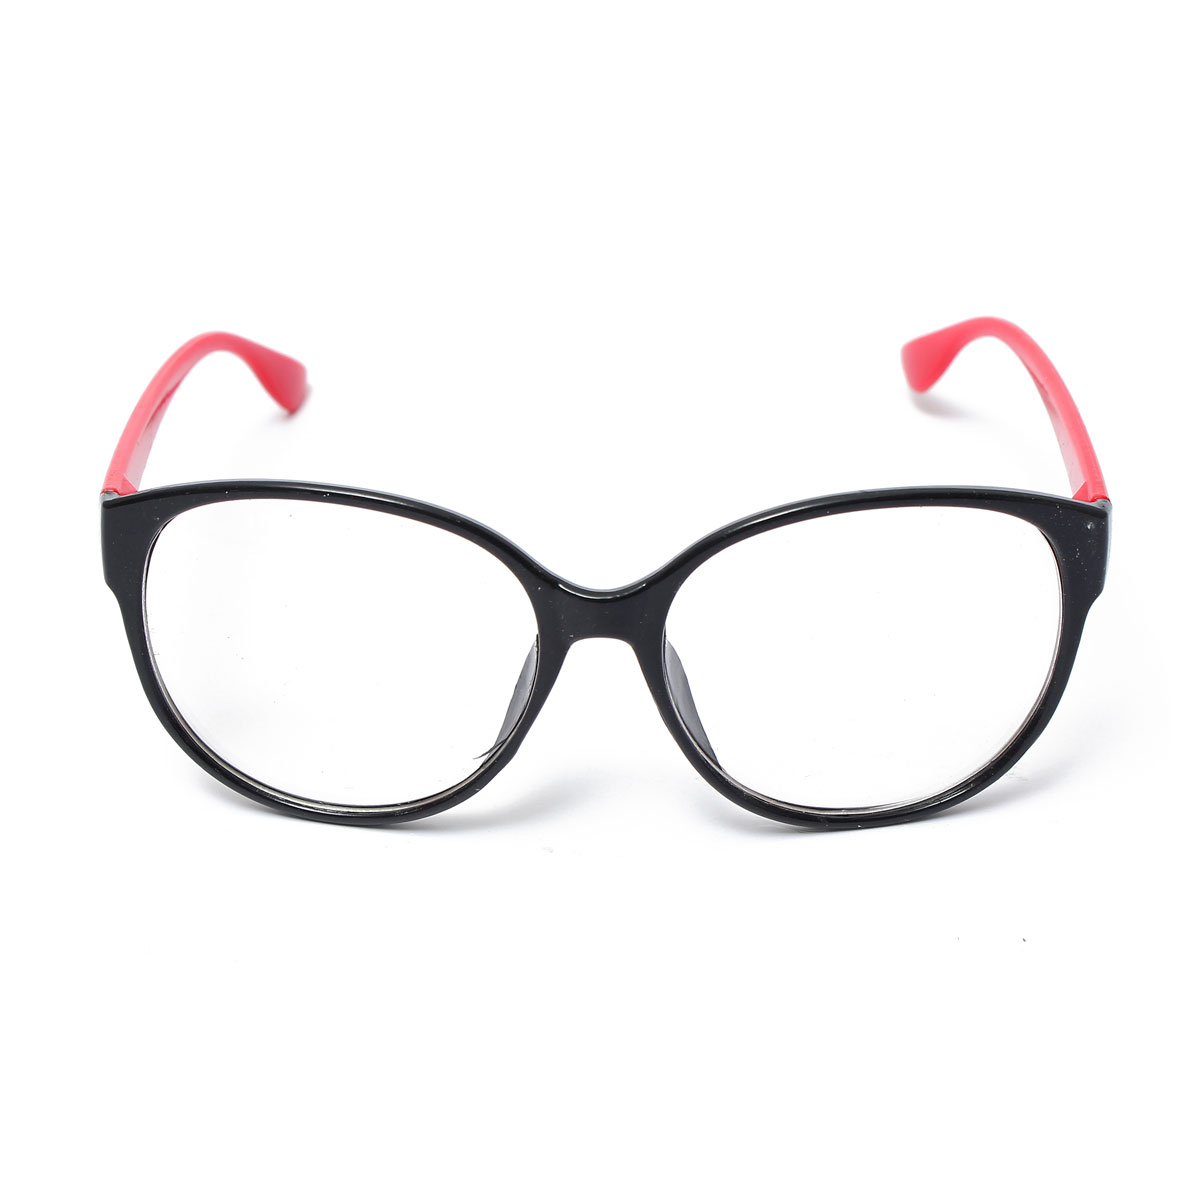 Retro Round Lens Eyeglass Frame Decoration Black-Red ...